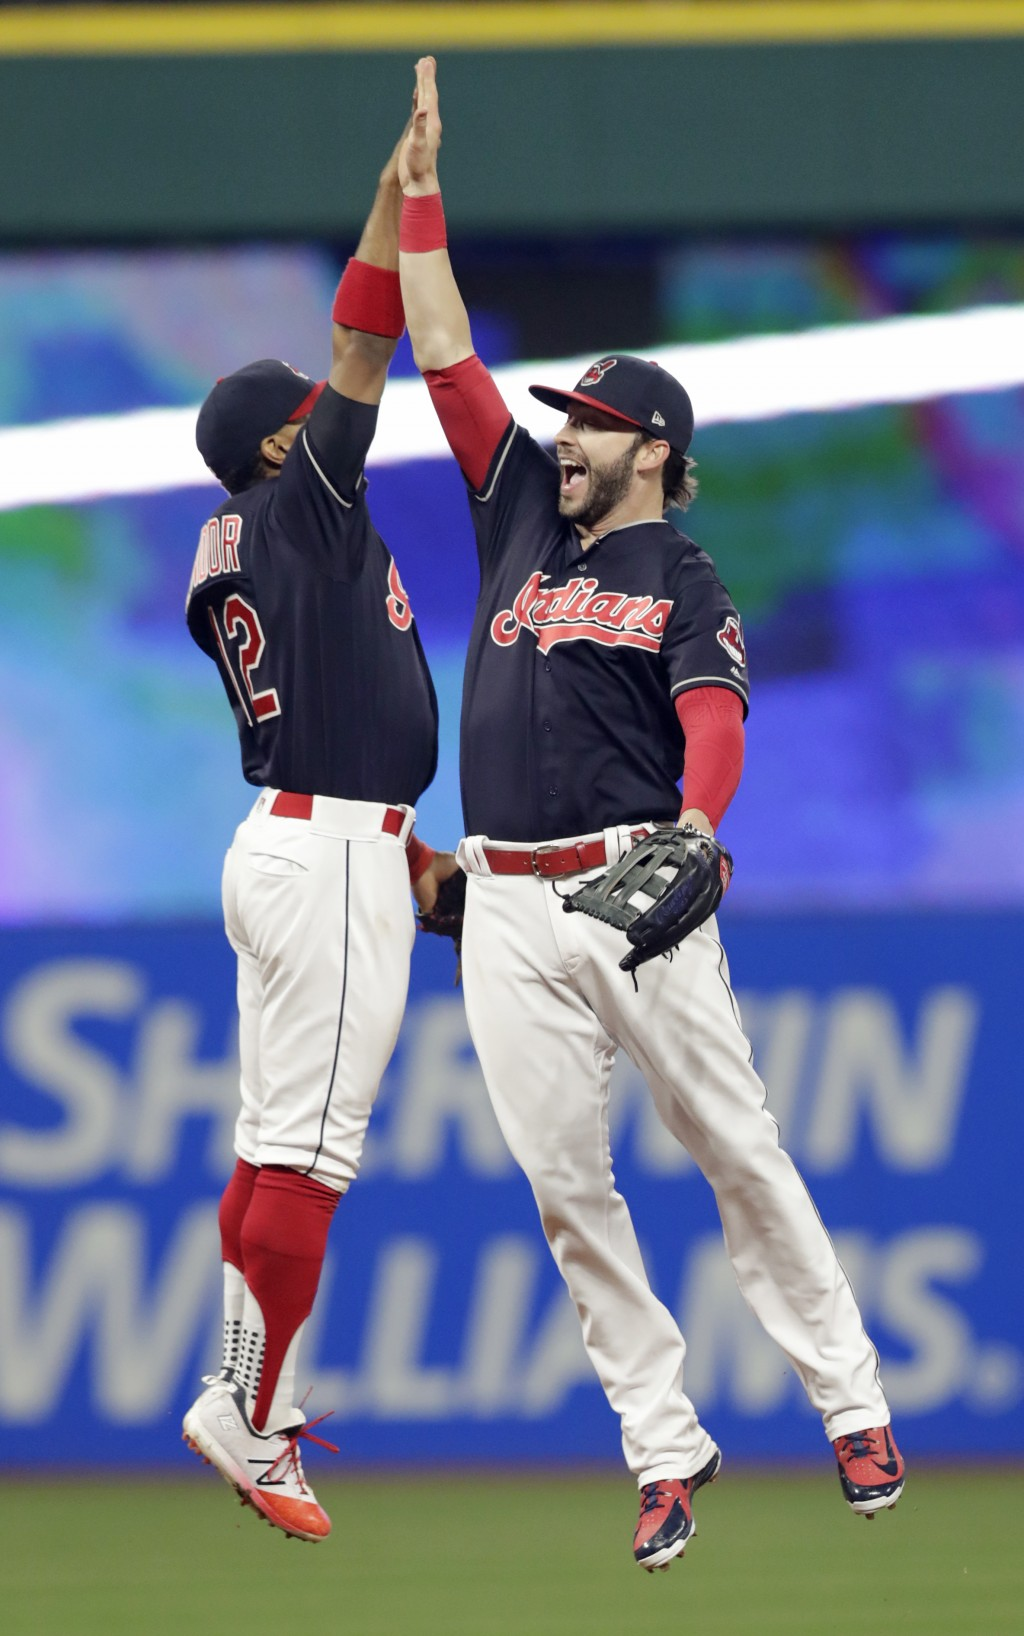 Cleveland Indians' Francisco Lindor, left, and Tyler Naquin celebrate after the Indians defeated the Seattle Mariners 6-5 in a baseball game Friday, A...